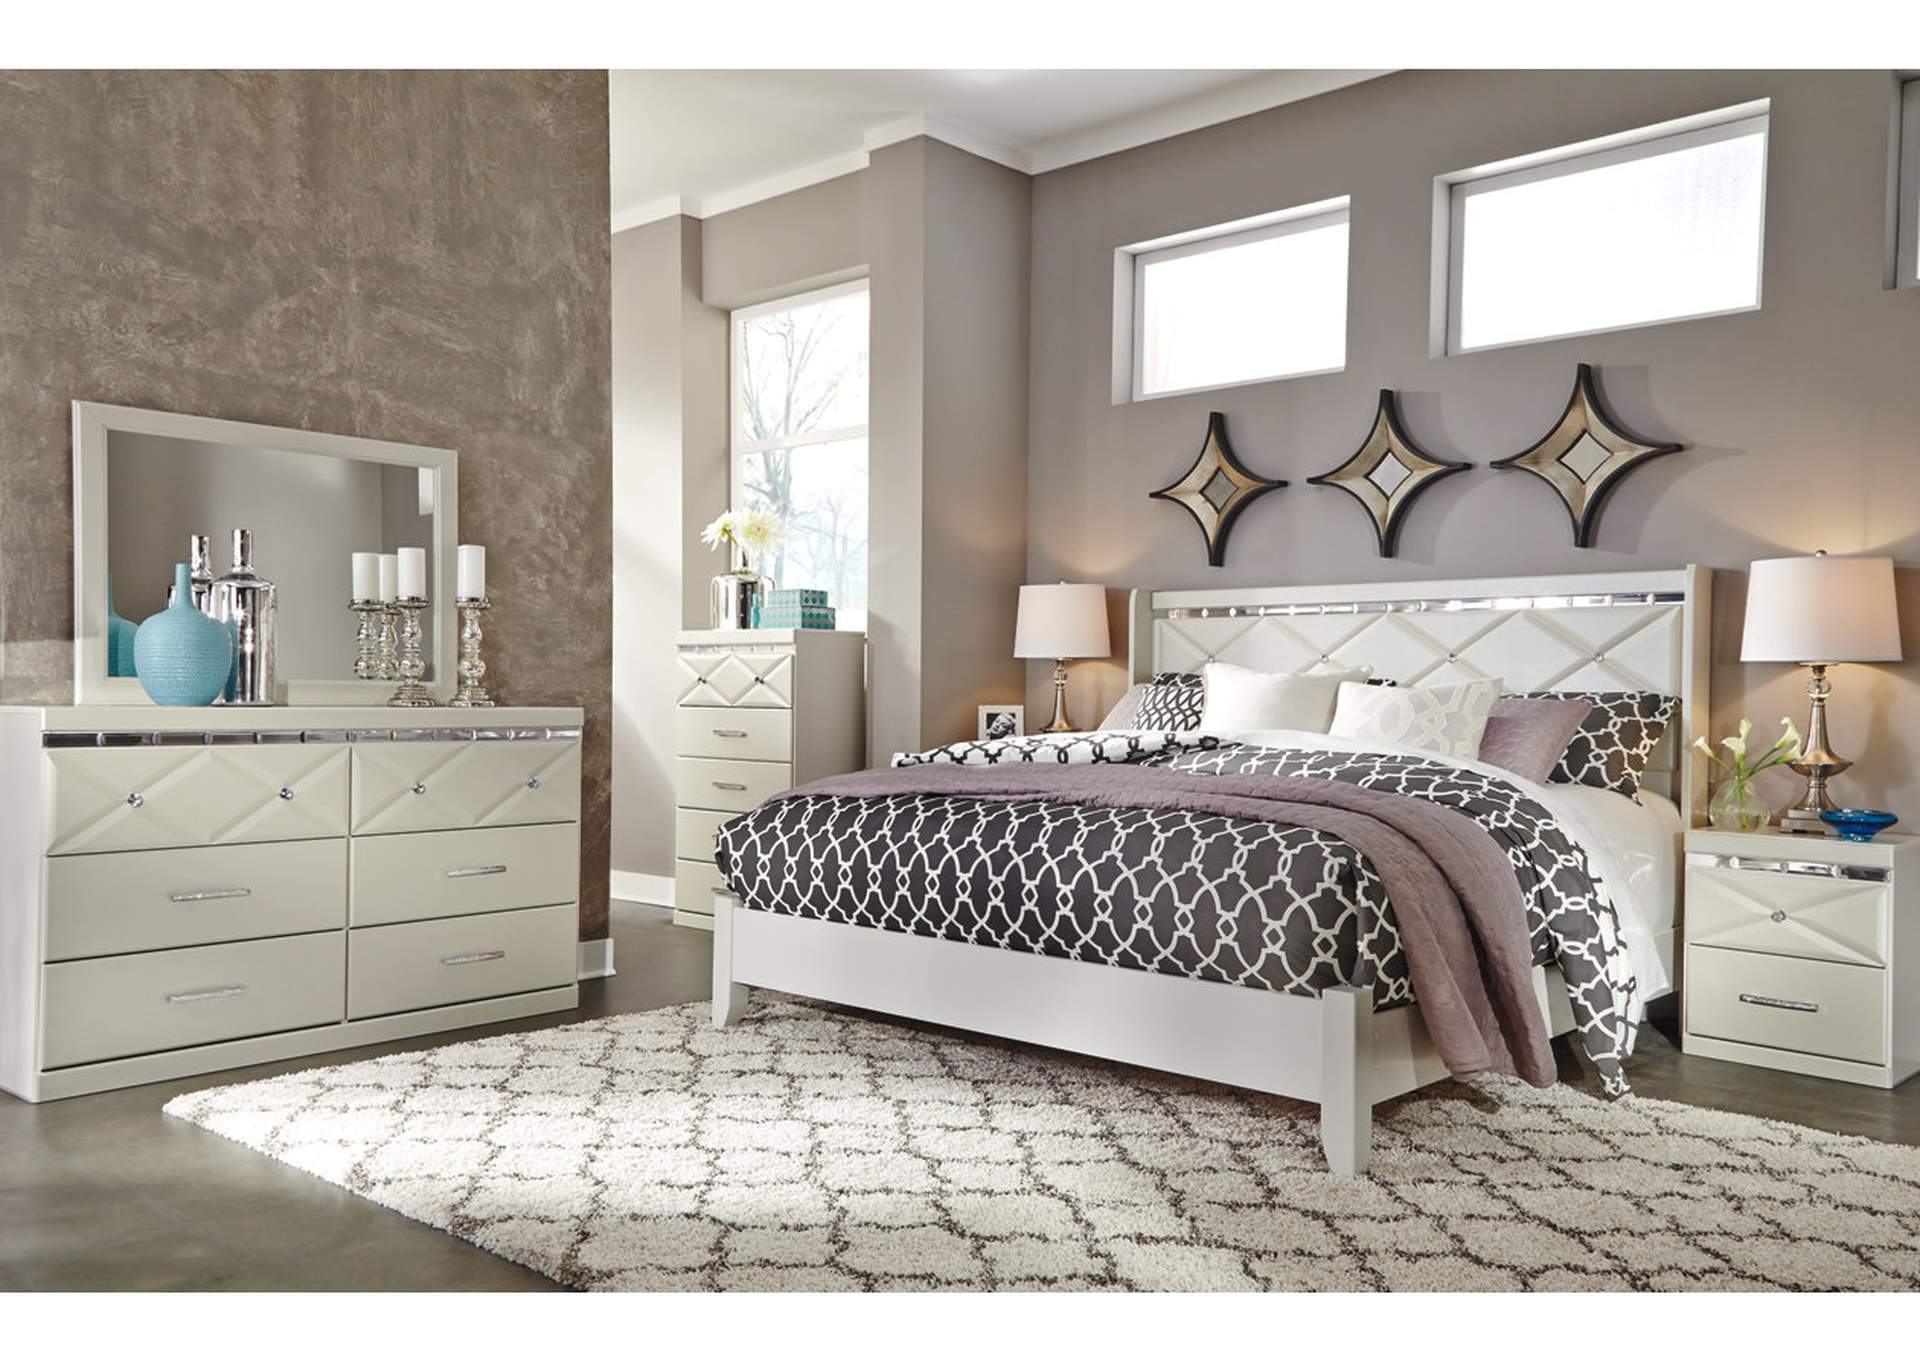 Dreamur Champagne King Panel Bed w/ Dresser, Mirror, Drawer Chest & Nightstand,Signature Design By Ashley